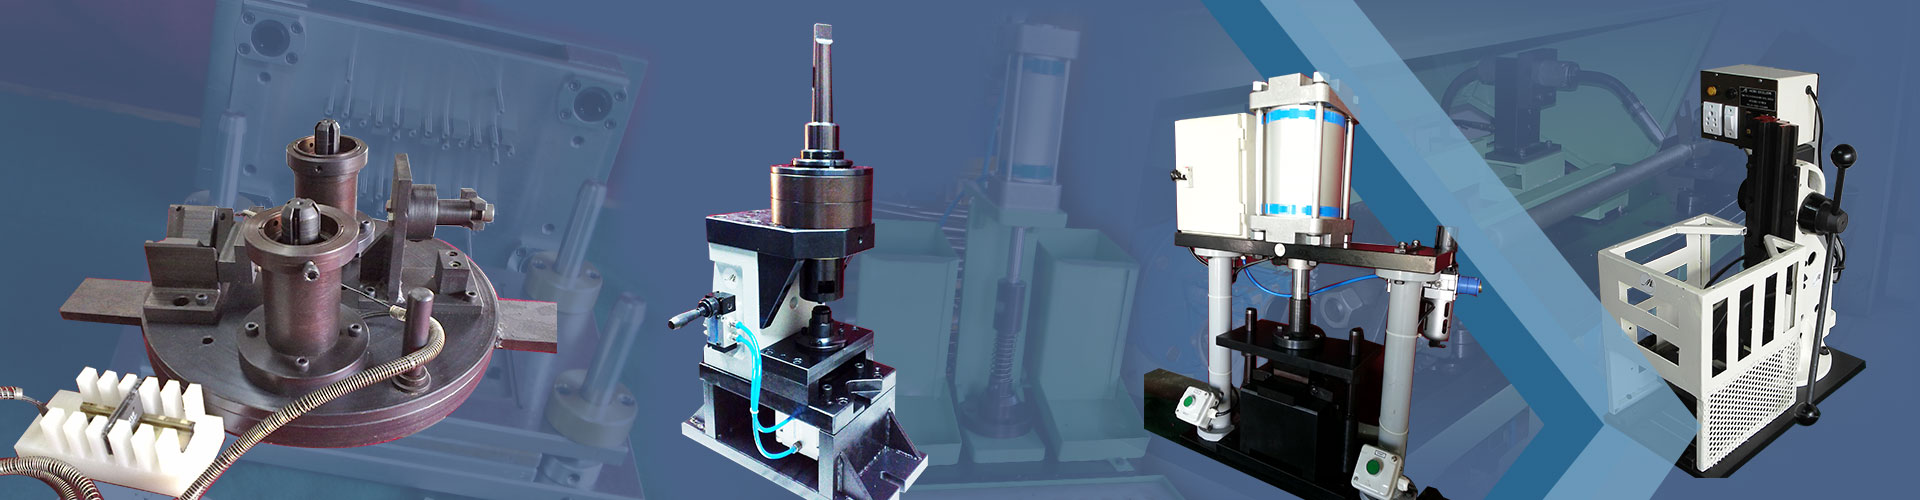 SPECIAL PURPOSE MACHINES, LOW COST AUTOMATION, JIGS AND FIXTURES